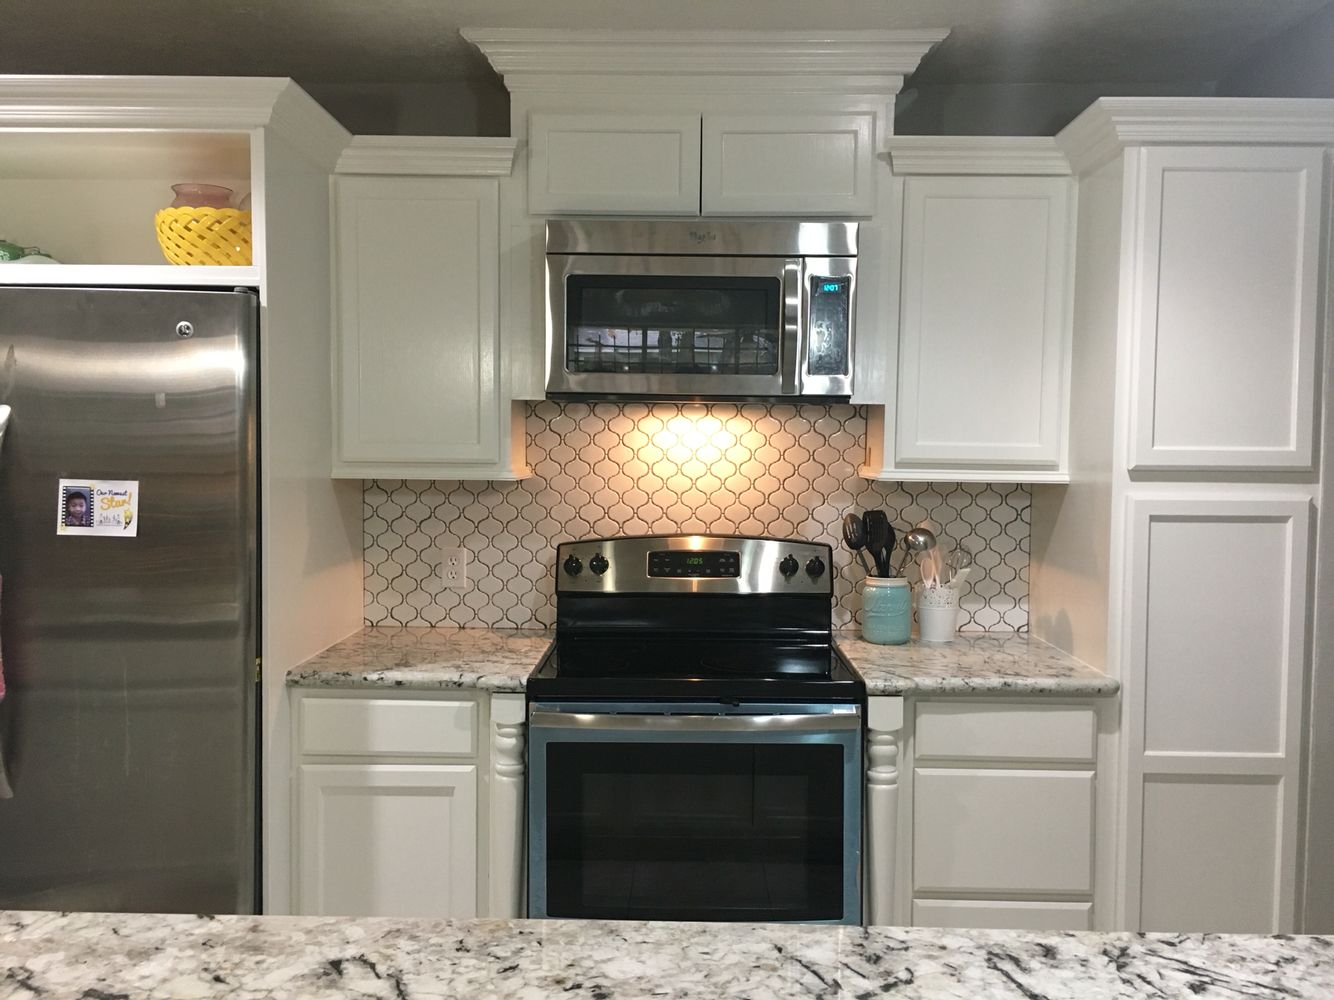 Our Kitchen Moroccan Tile Backsplash Alaska White Granite Countertop